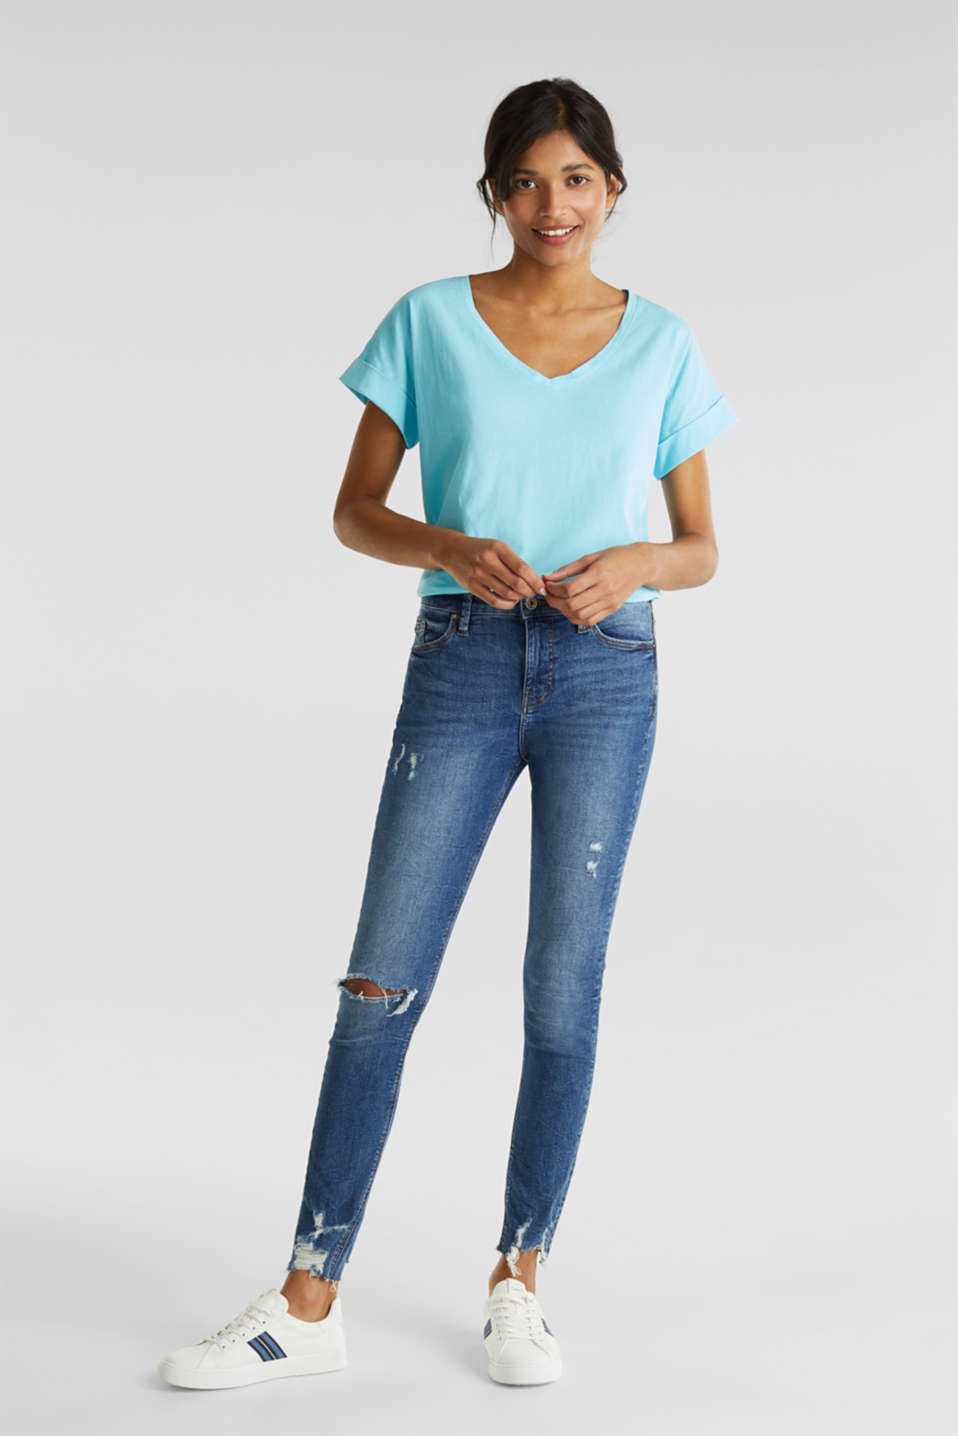 V-neck top, 100% cotton, TURQUOISE 4, detail image number 1